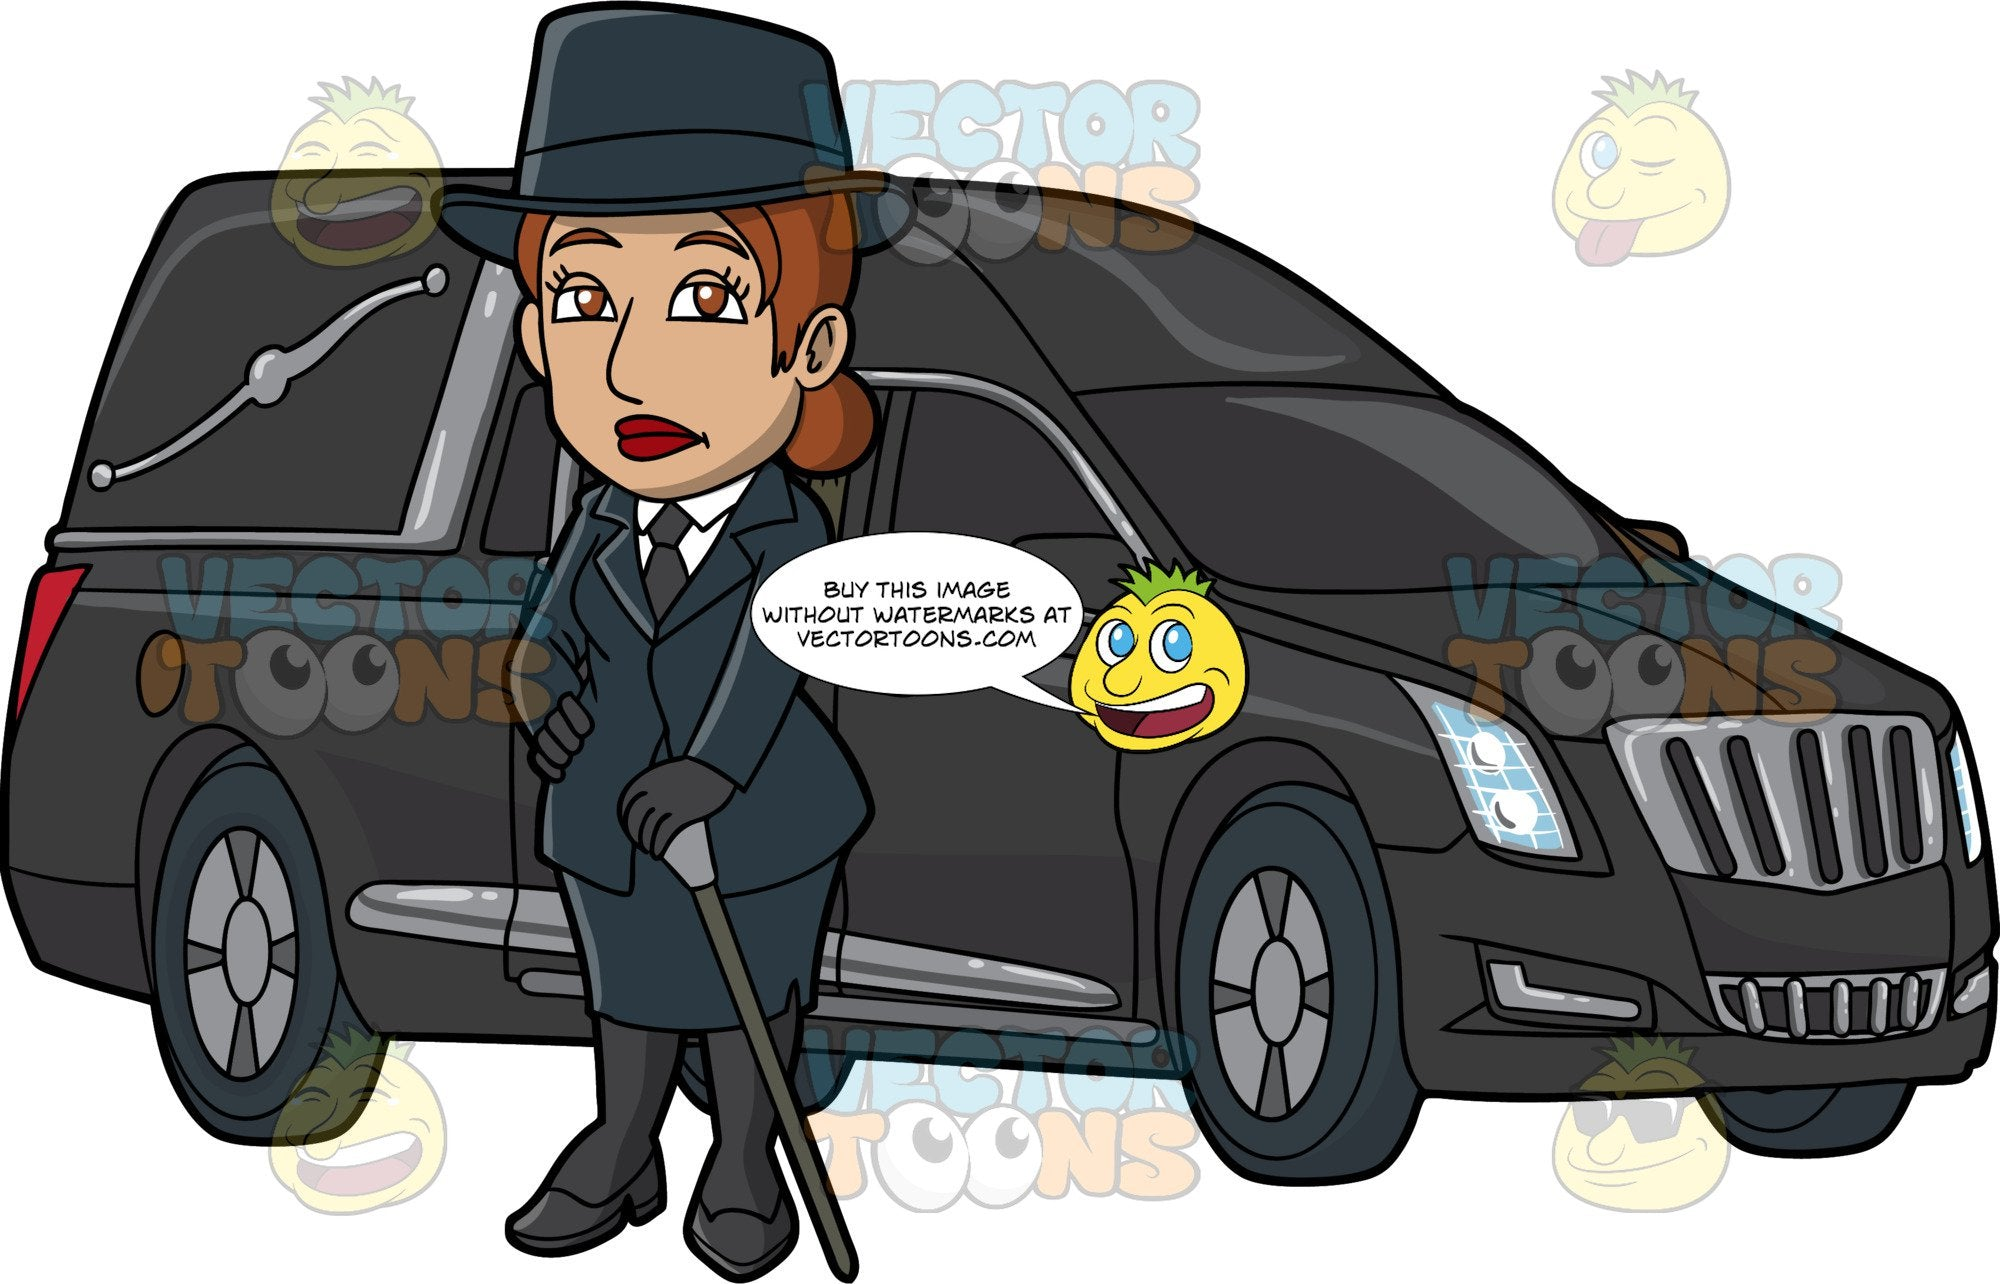 A Demure Female Funeral Director. A woman with reddish brown hair, wearing a midnight blue top hat, dress jacket, skirt, black necktie, gloves, stockings, heels, white dress shirt, frowns while holding a two tone gray cane in her left hand, as she stands beside a black hearse